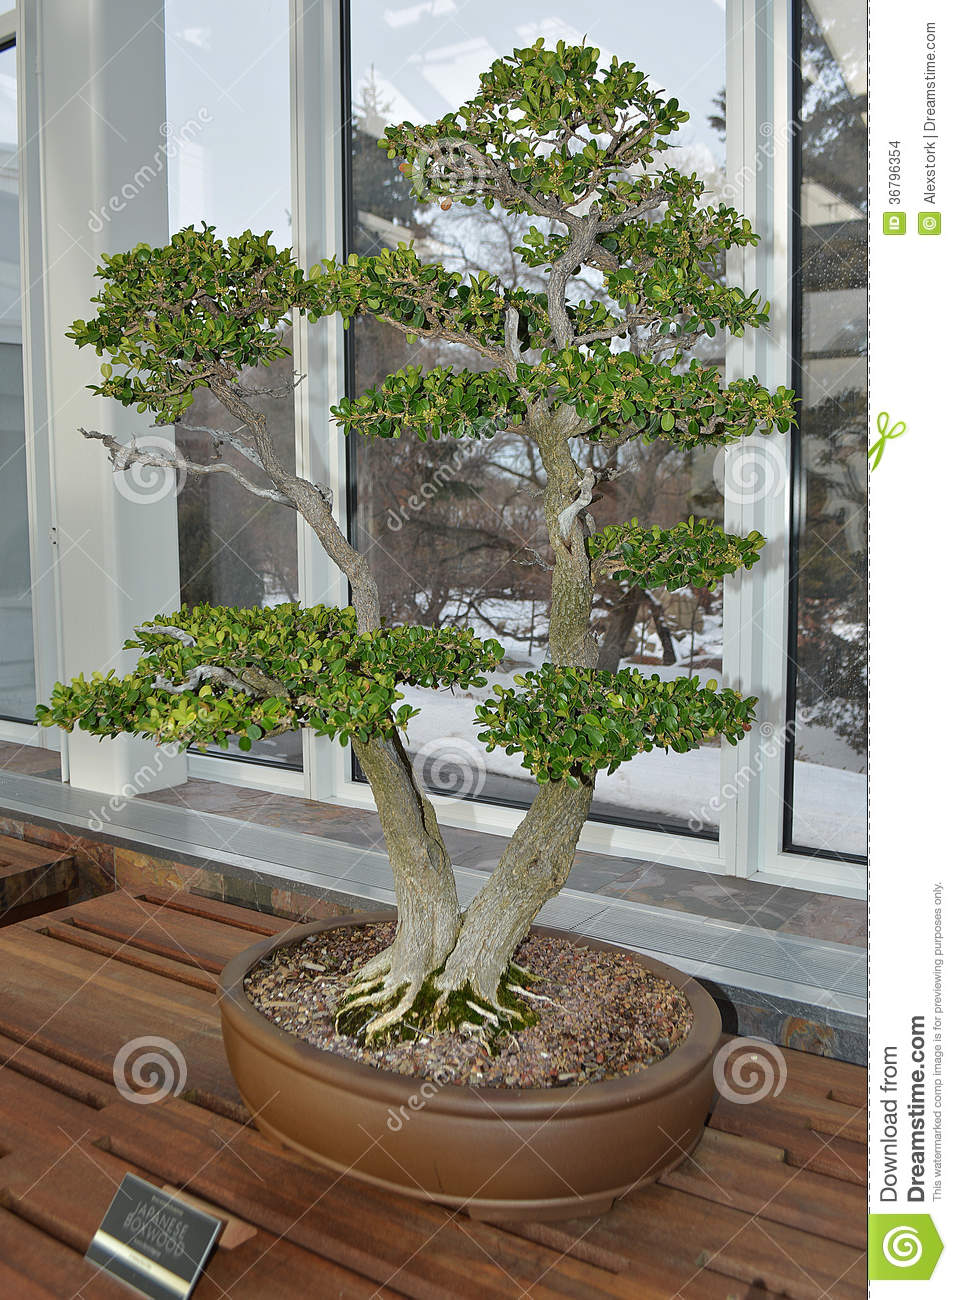 japanischer buchsbaum bonsai baum stockfoto bild von. Black Bedroom Furniture Sets. Home Design Ideas